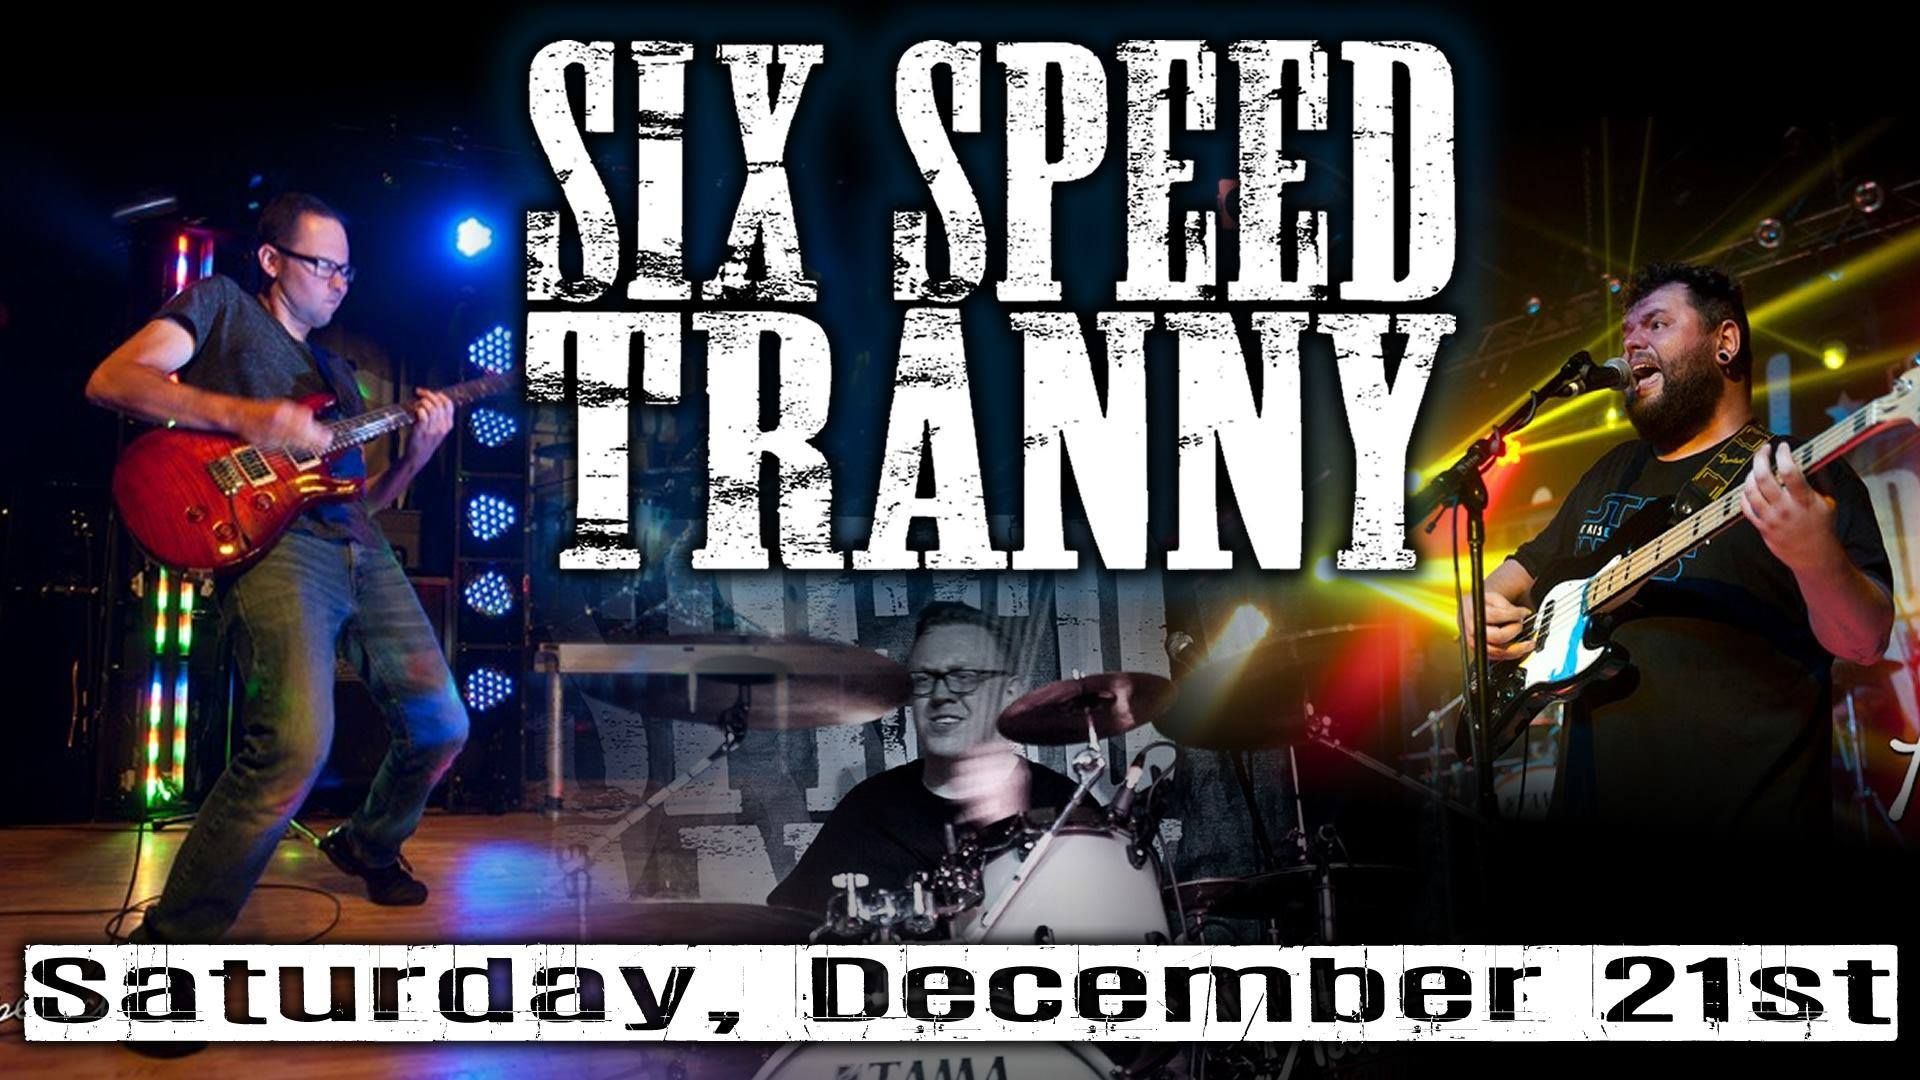 Six Speed Tranny Live at Mickey Finn's Brewery